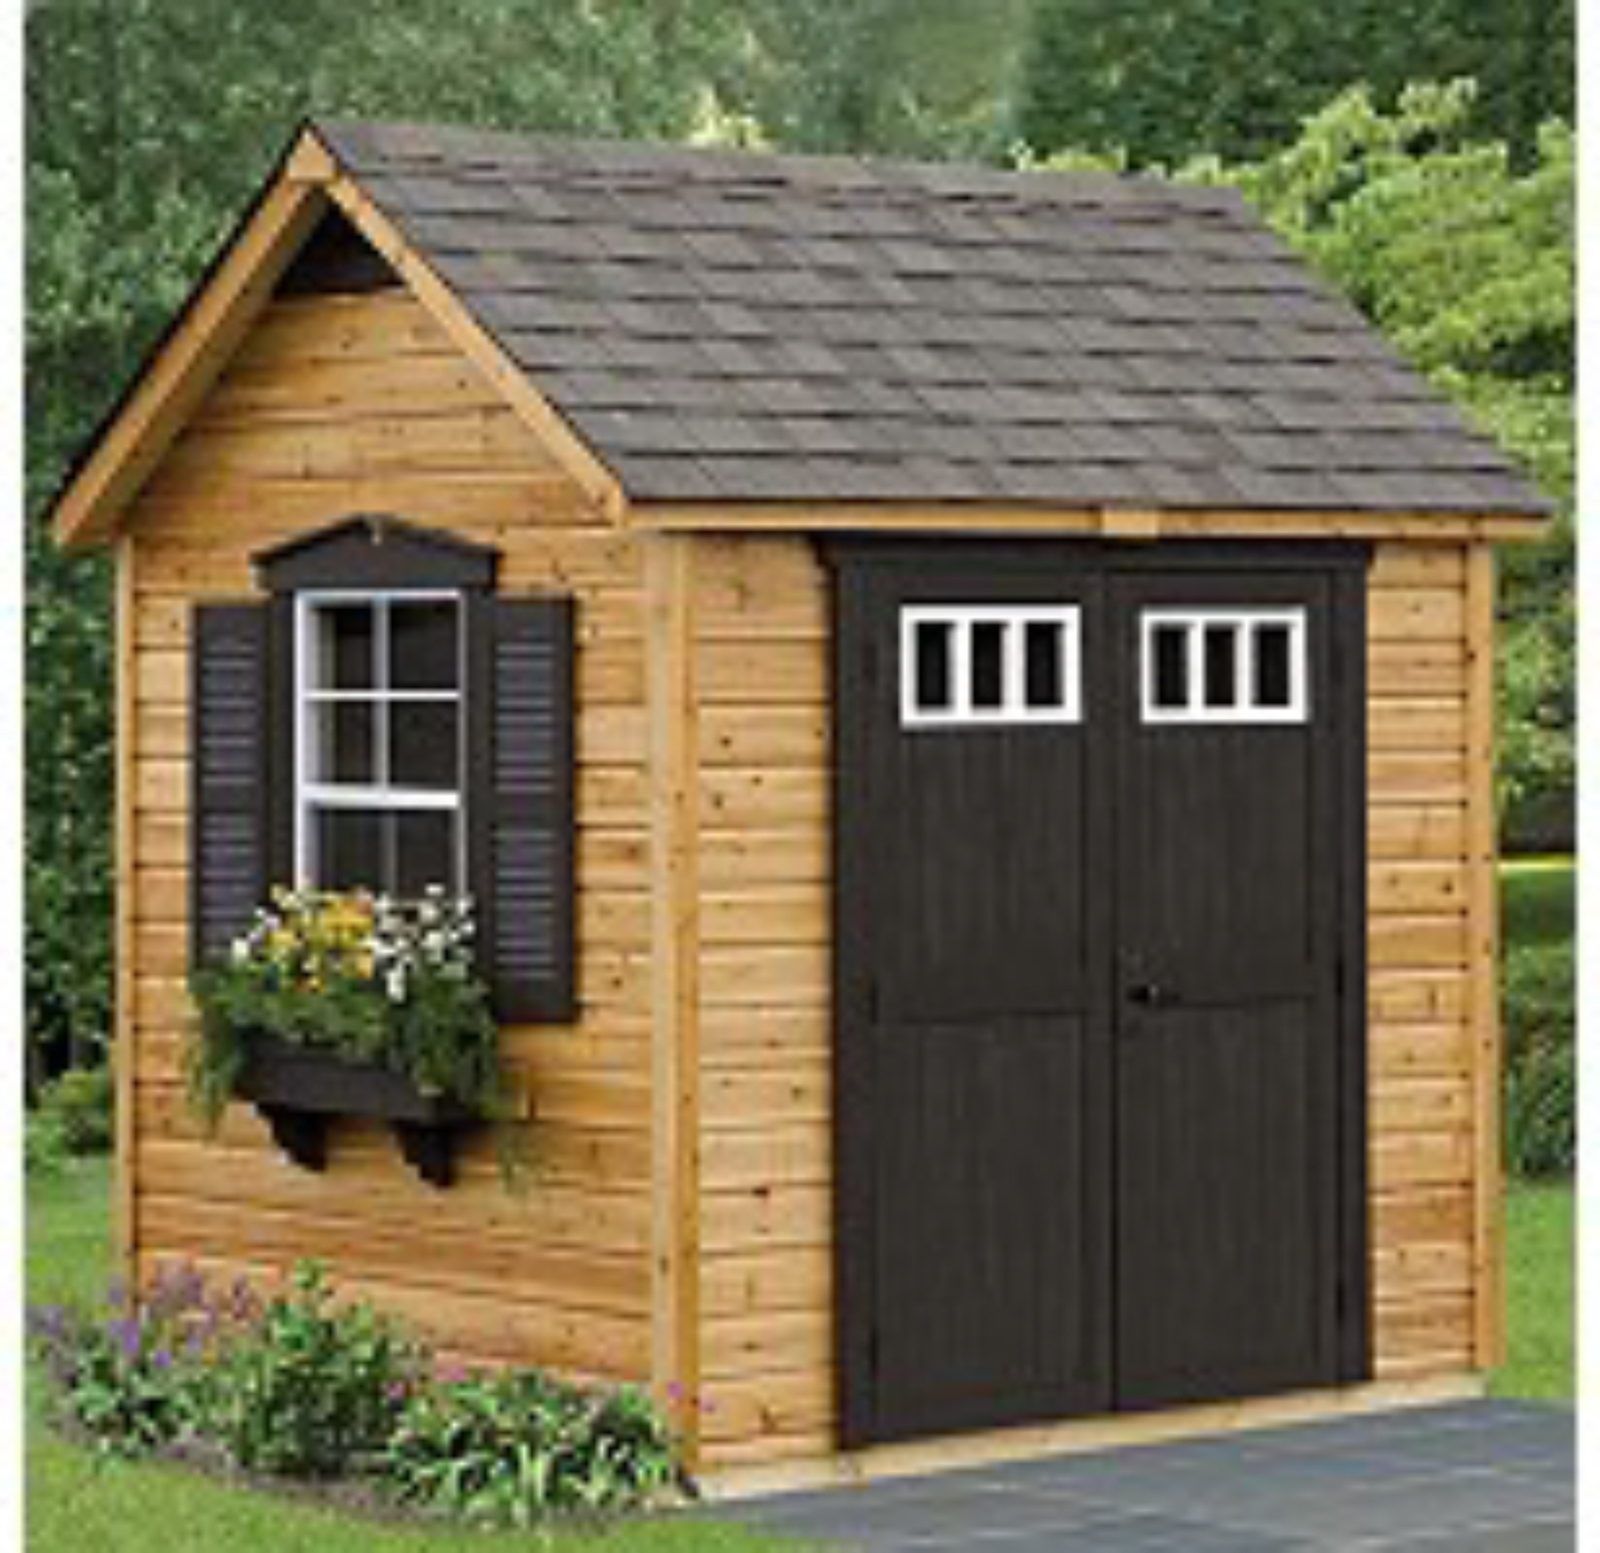 Suncast legacy garden building outdoor storage shed wood for Outdoor wood shed